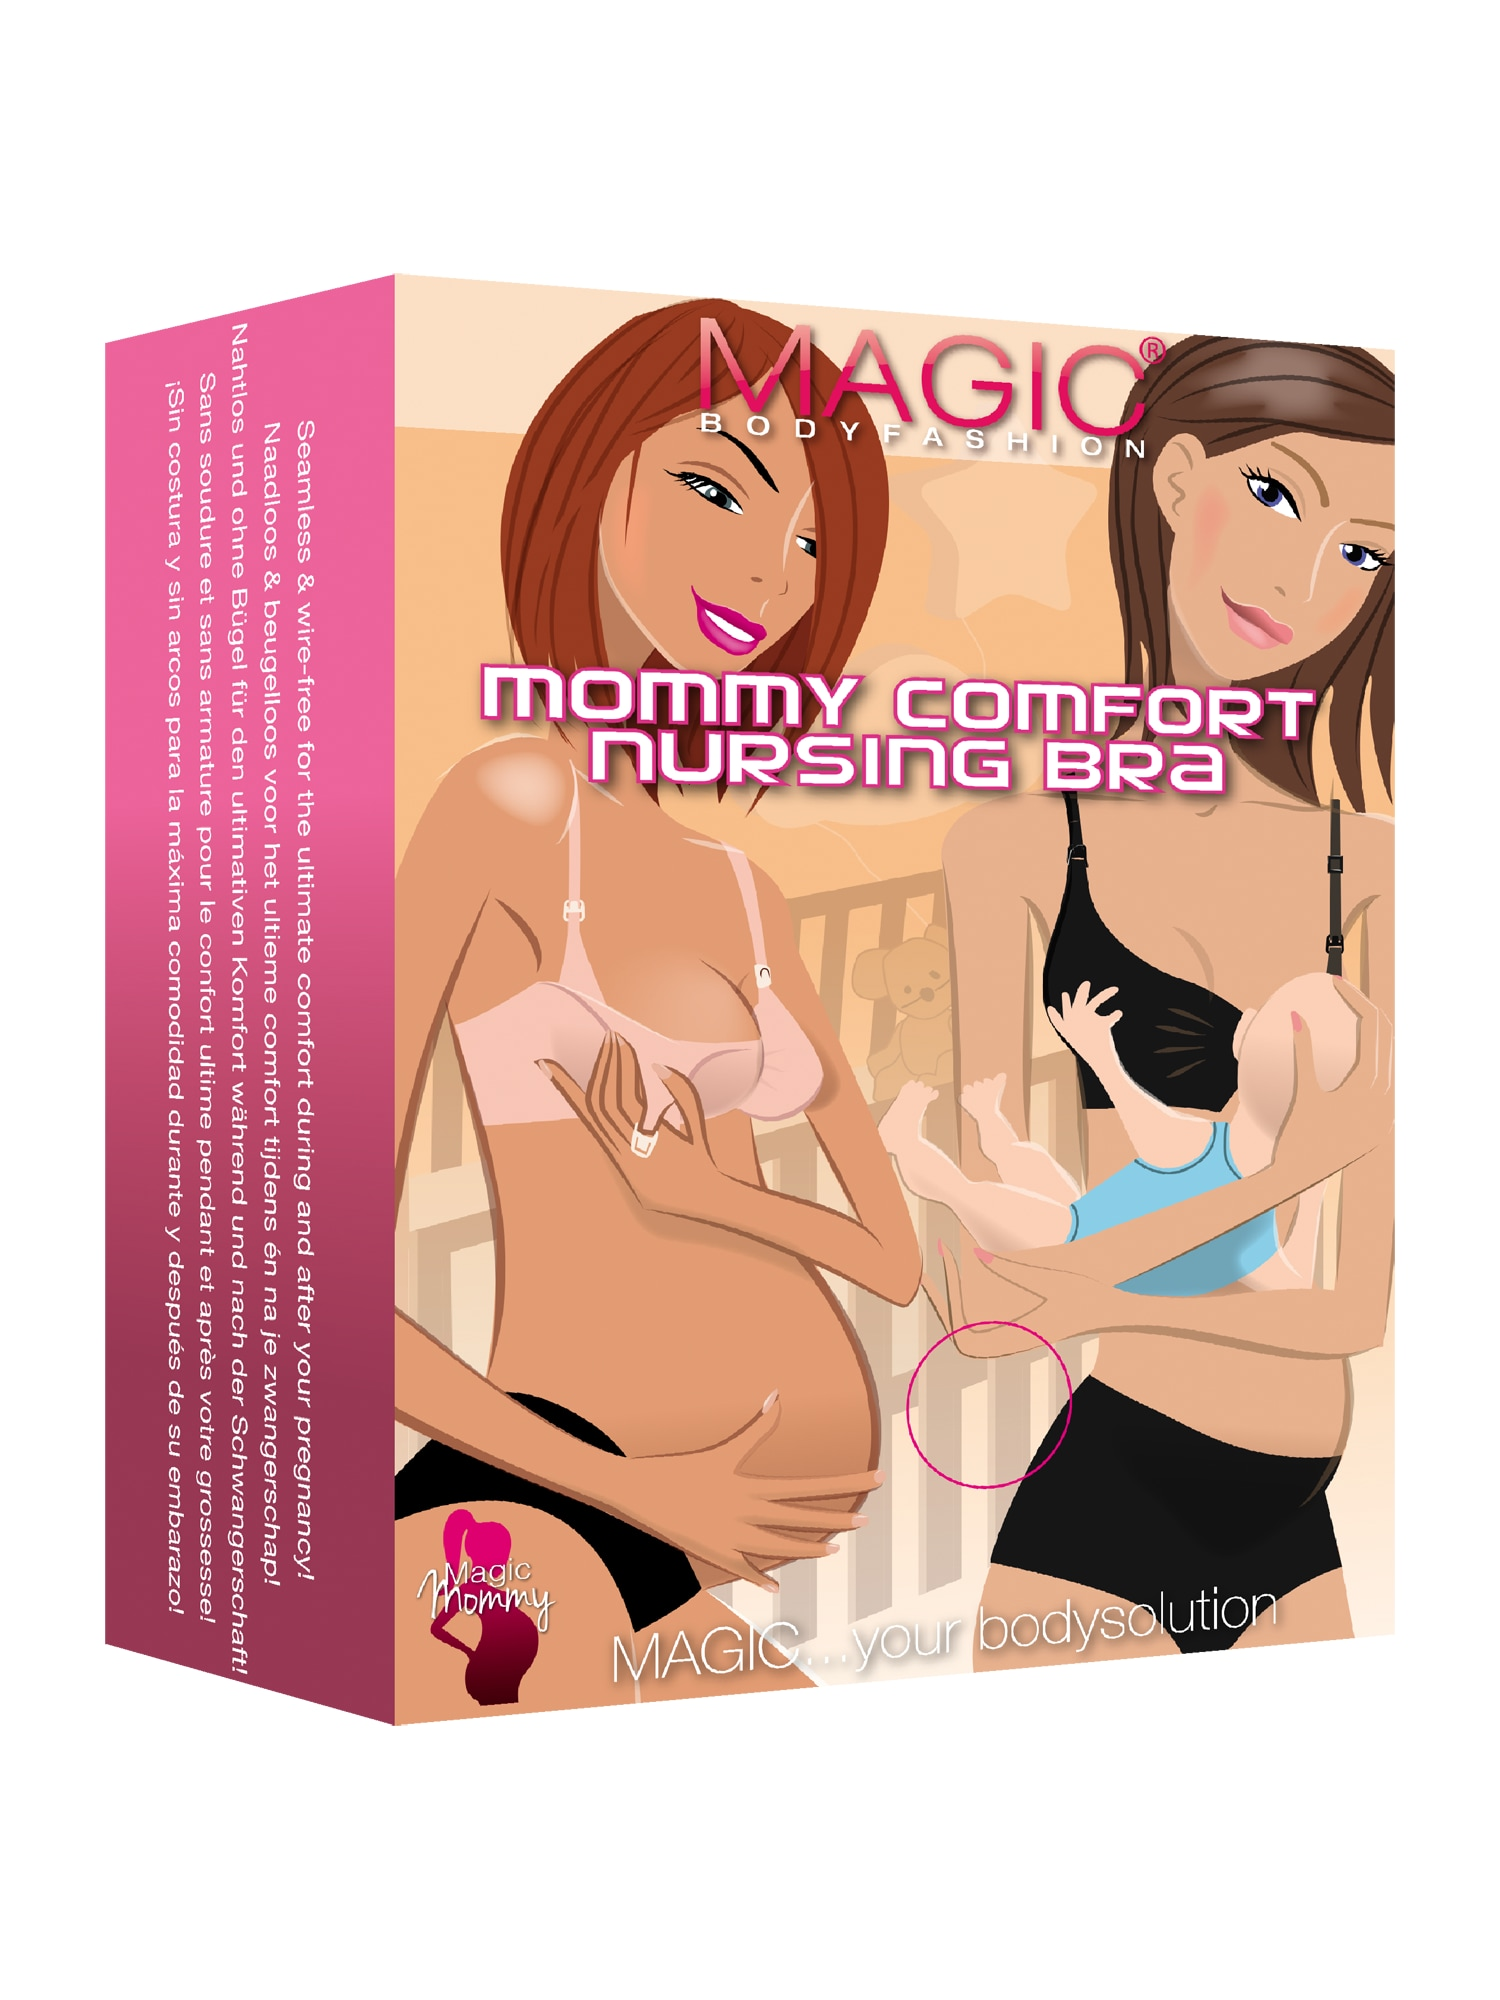 MAGIC Bodyfashion Kojící podprsenka Mommy Comfort béžová Magic bodyfashion